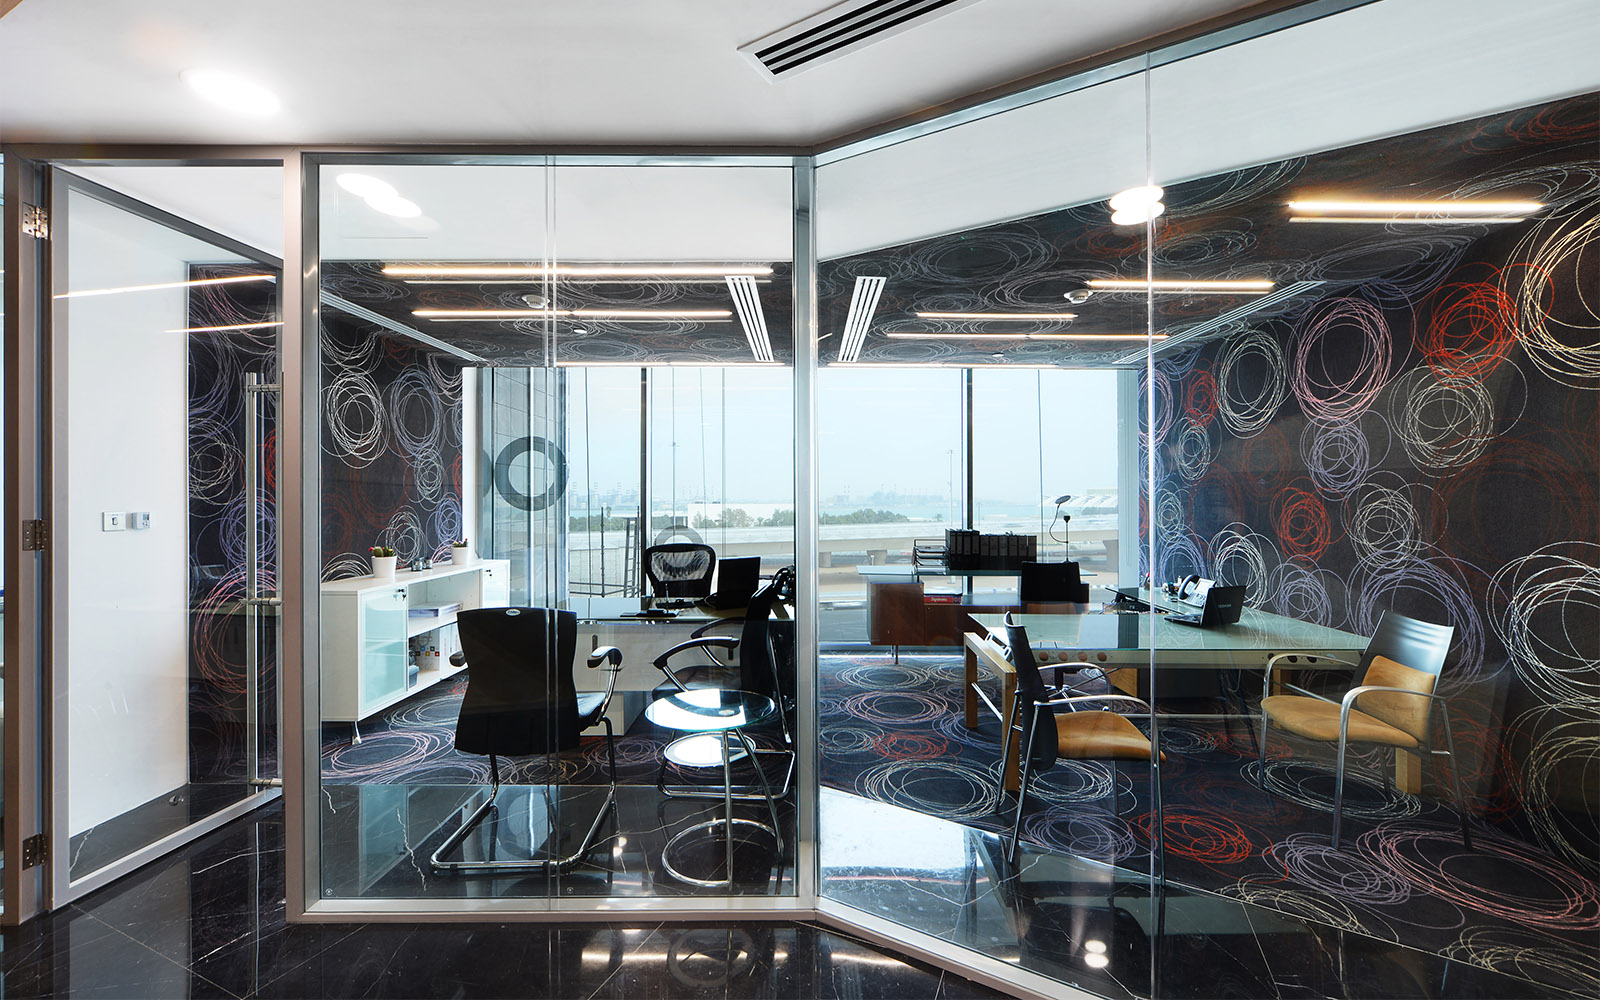 Wall-to-wall carpet for office design by ege, where colourful scribble-like patterns meet a stark black tile surface for a bold effect